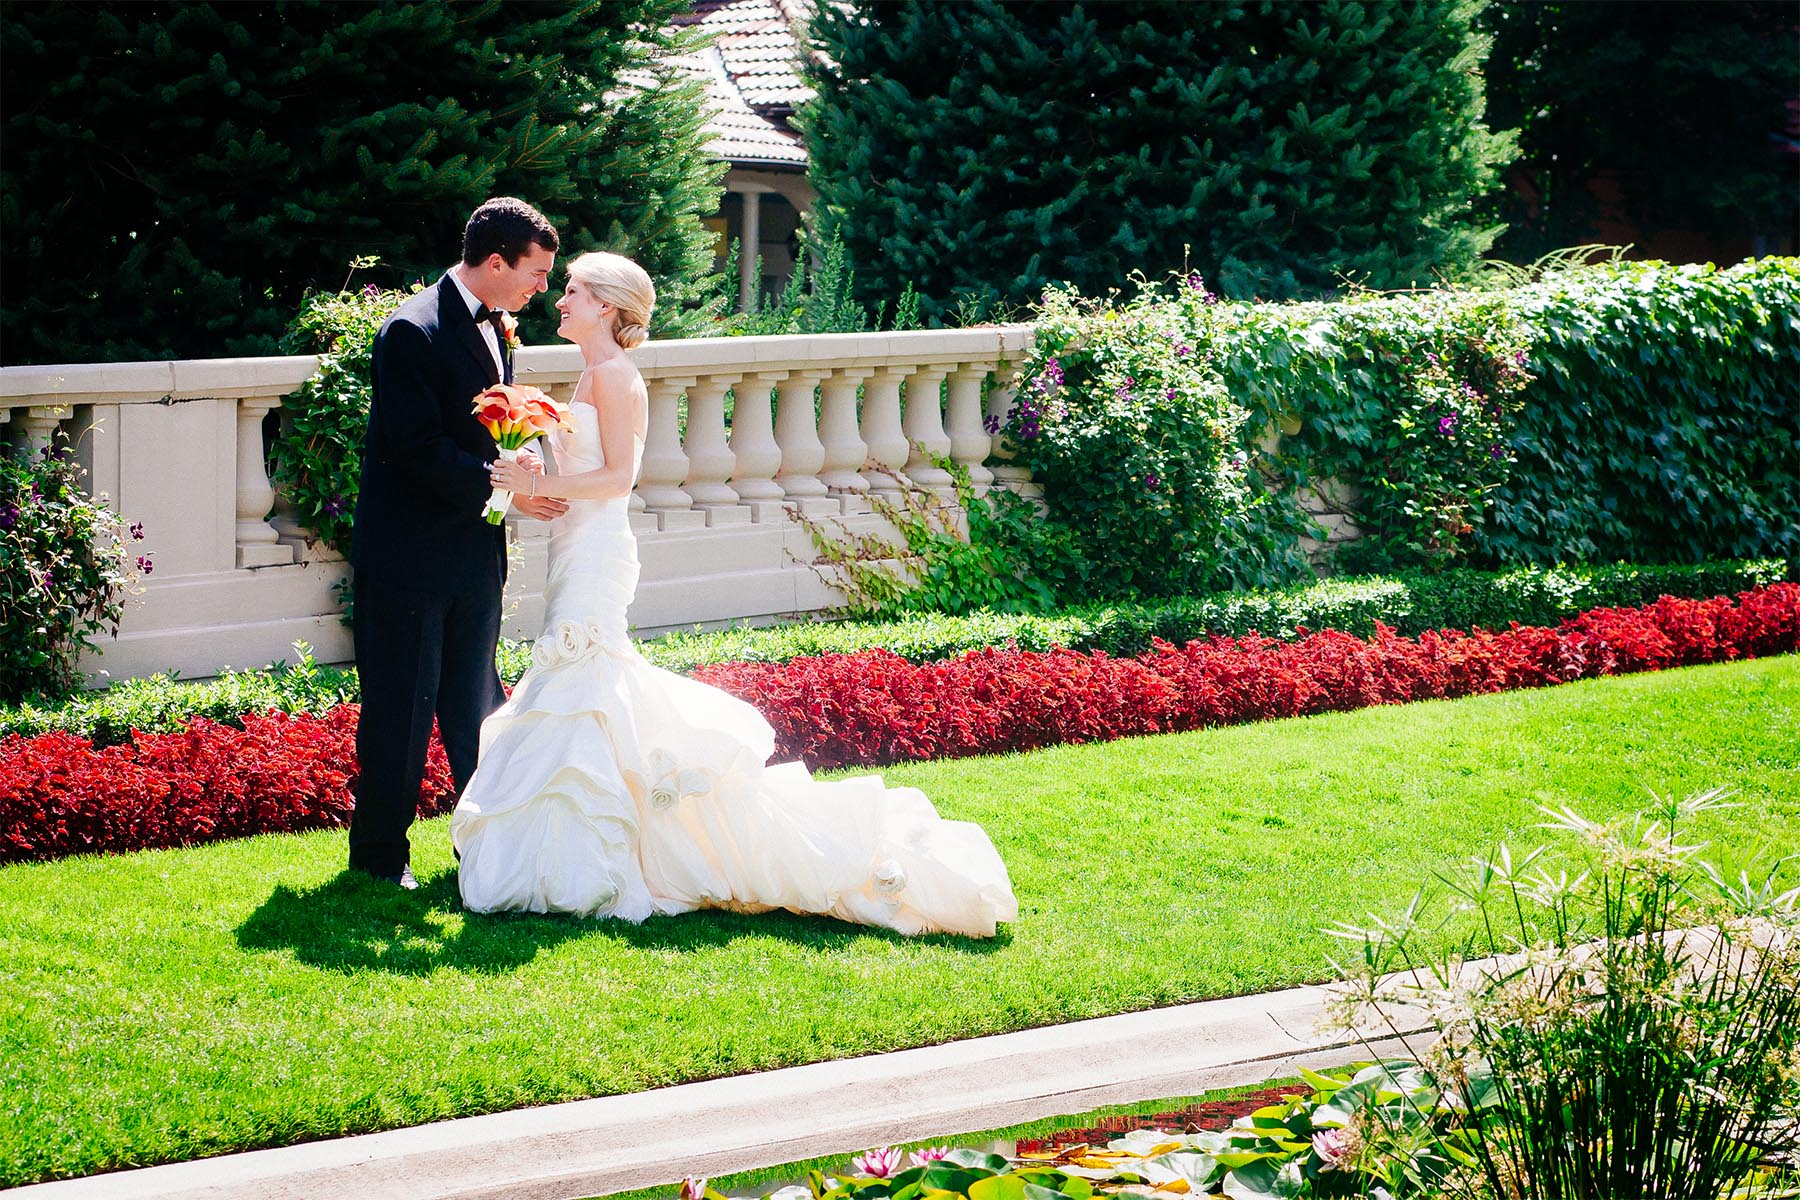 Wedding couple walks together in front of the koi pond at The Broadmoor.